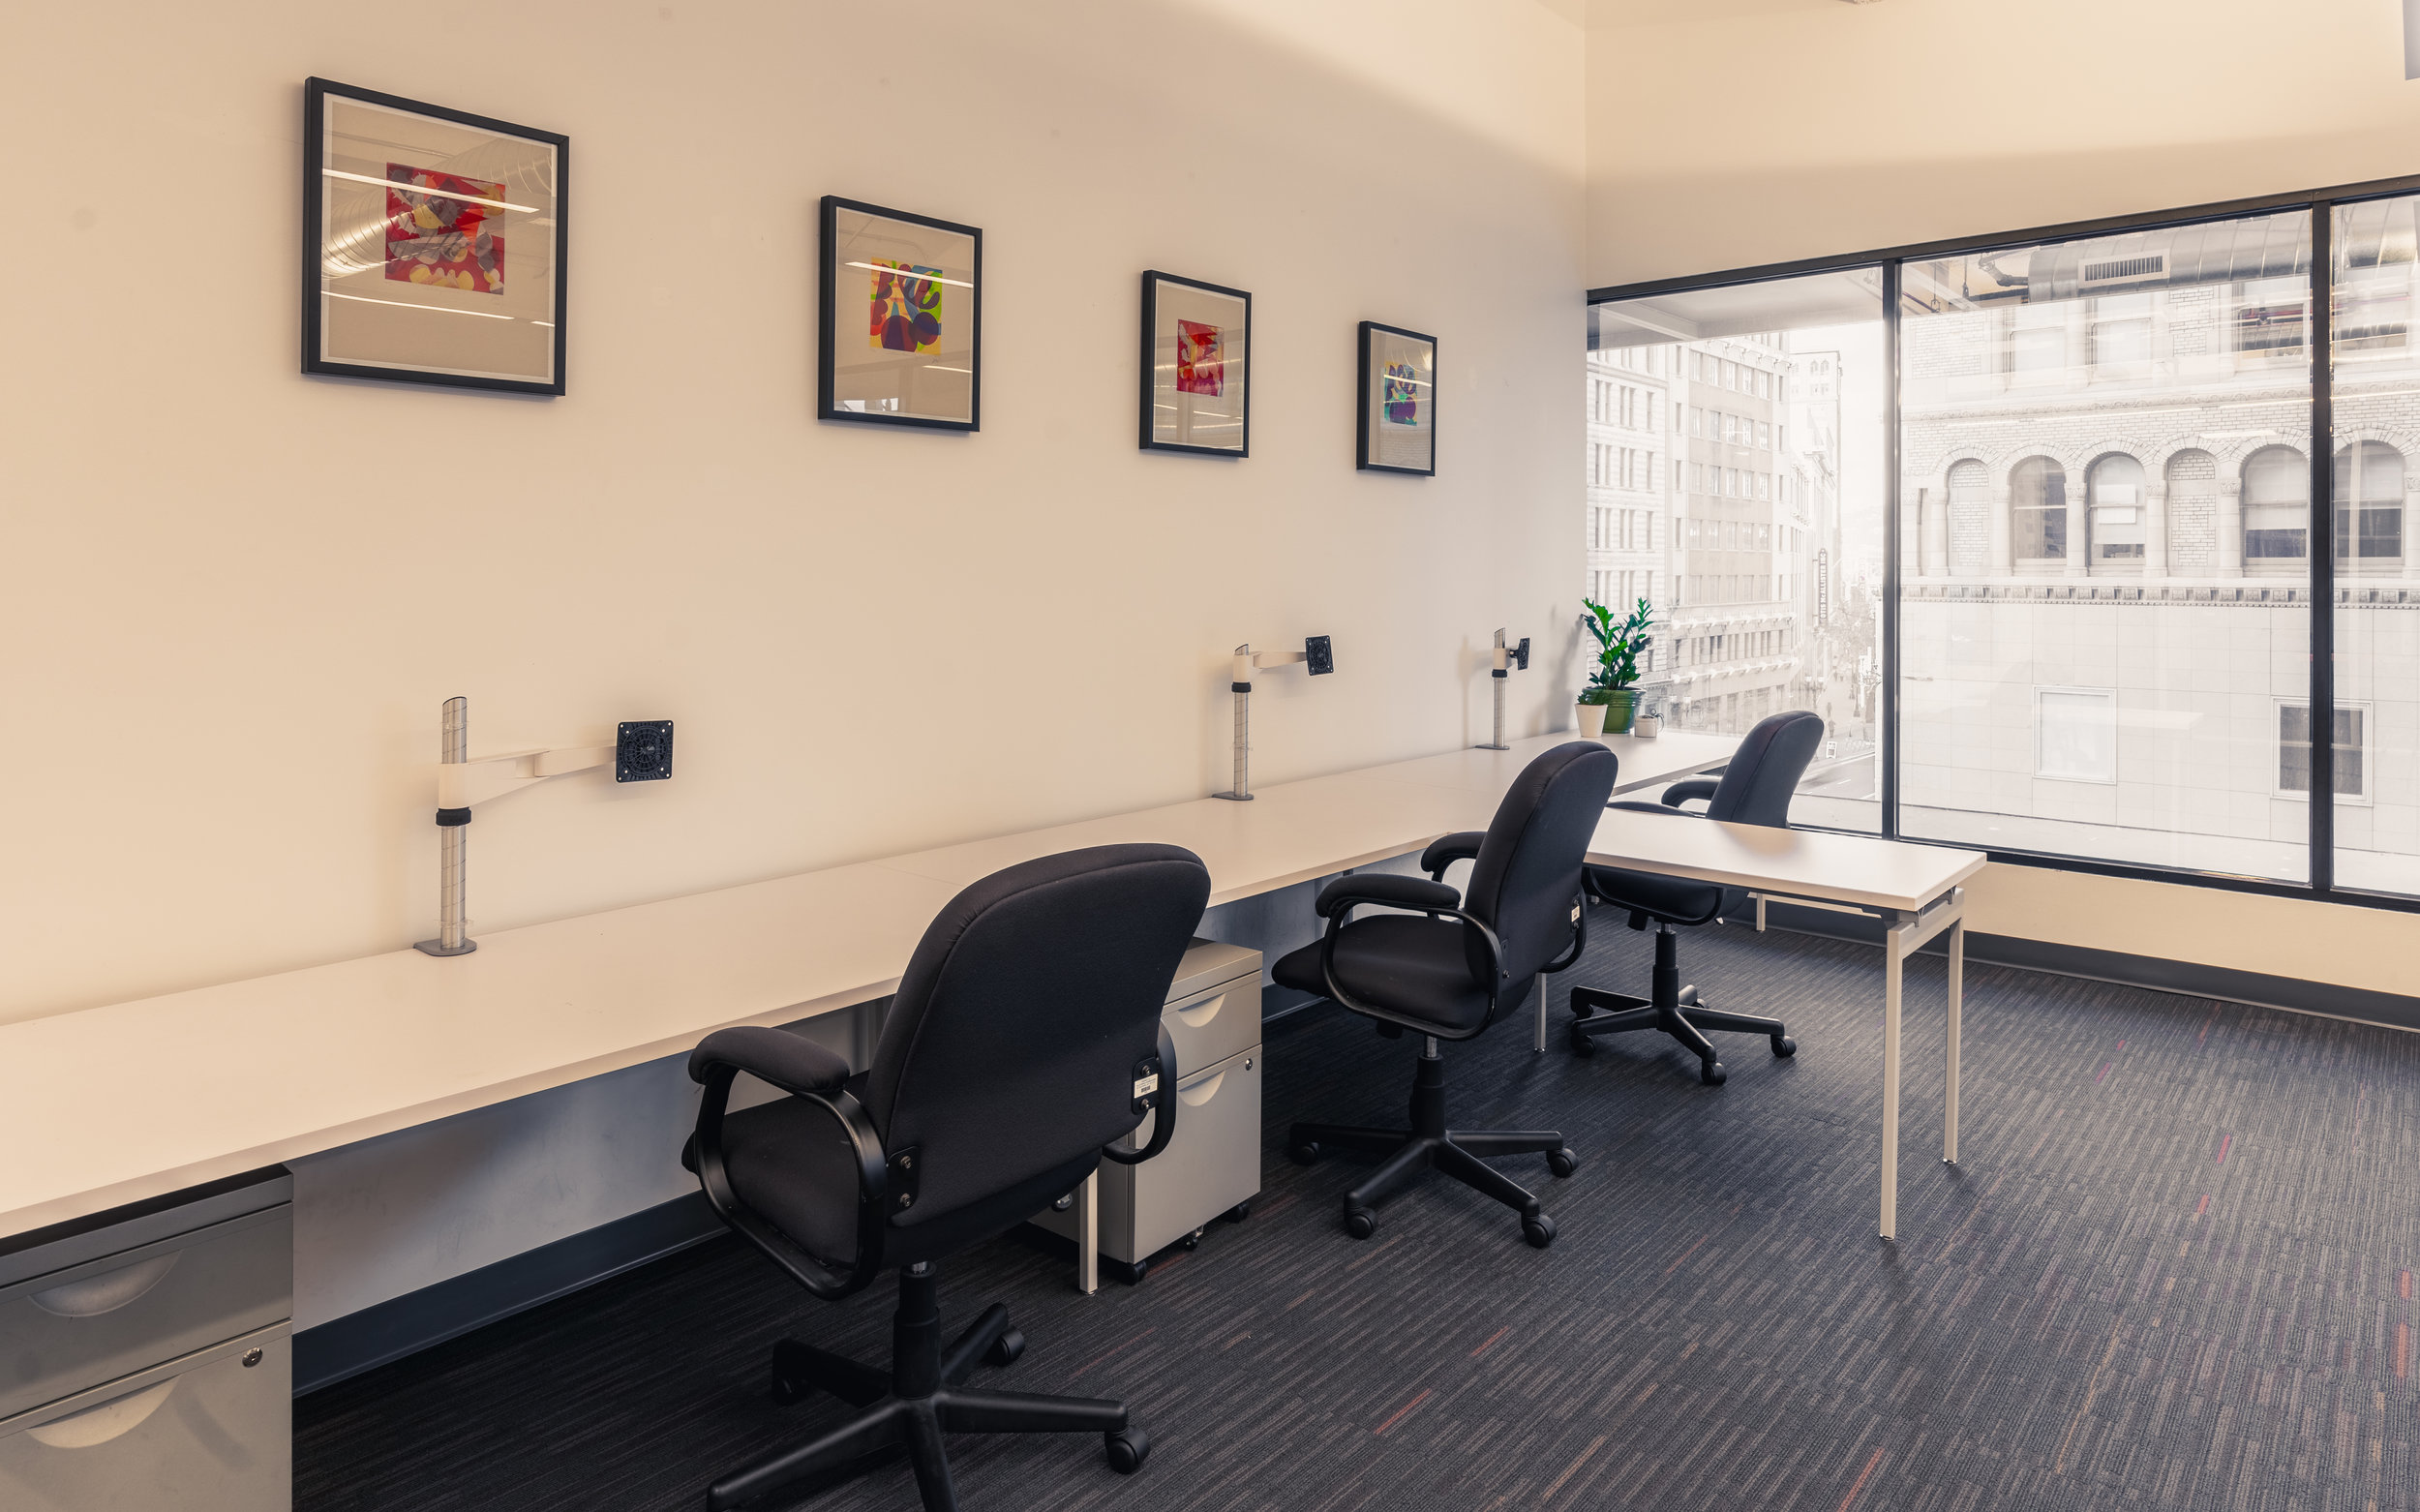 REIMAGINE YOUR WORK SPACE - NEW OPPORTUNITIES FOR CO-WORKING